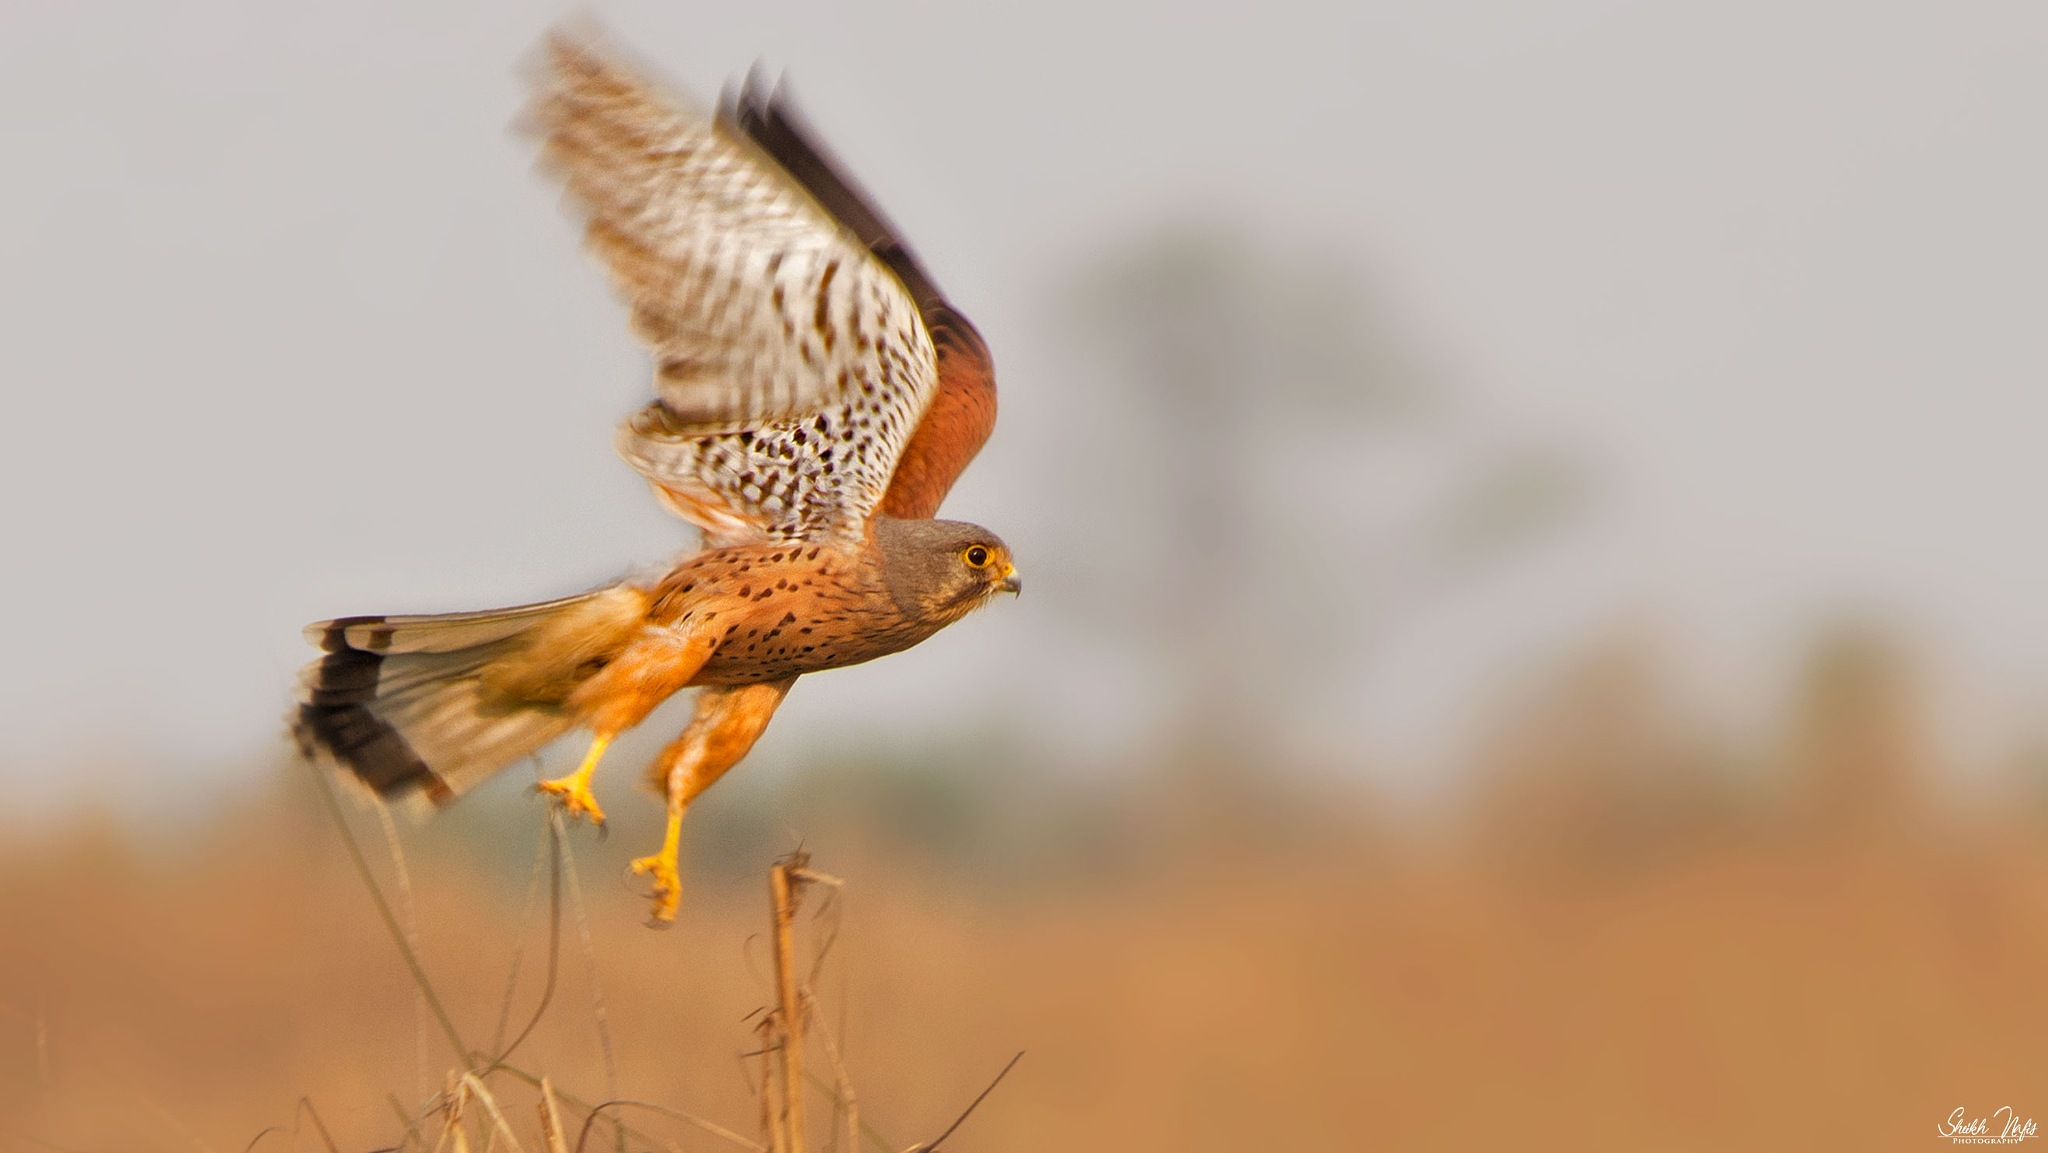 Common Kestrel by Sheikh Nafis